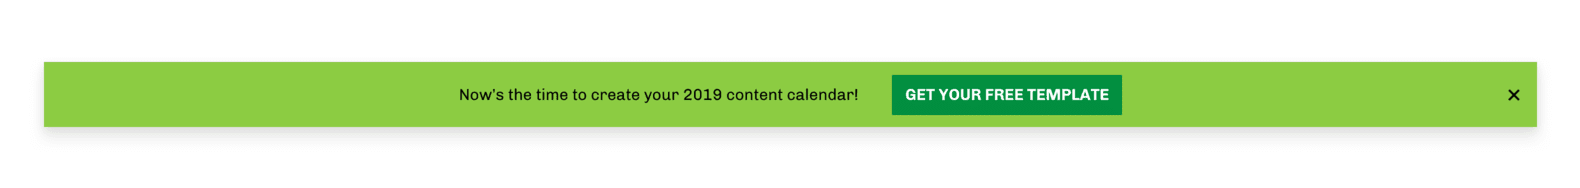 Alert bar: Now's the time to create your 2018 content calendar! Get your free template >